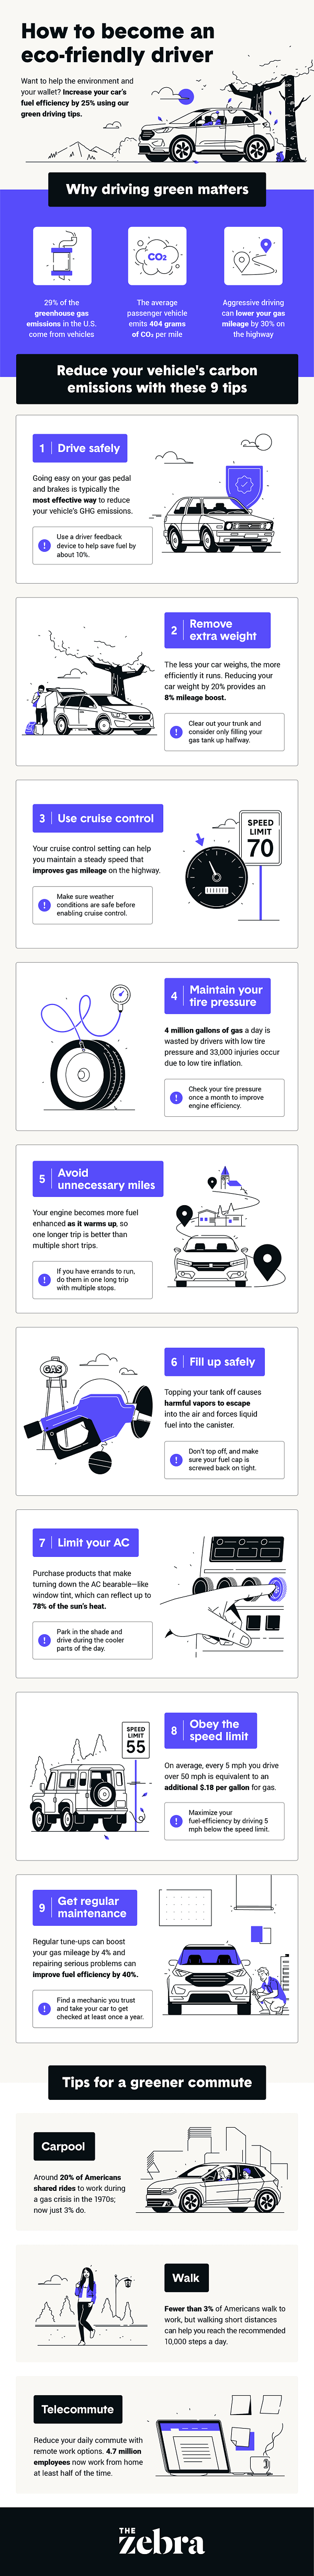 How to be a more eco-friendly driver